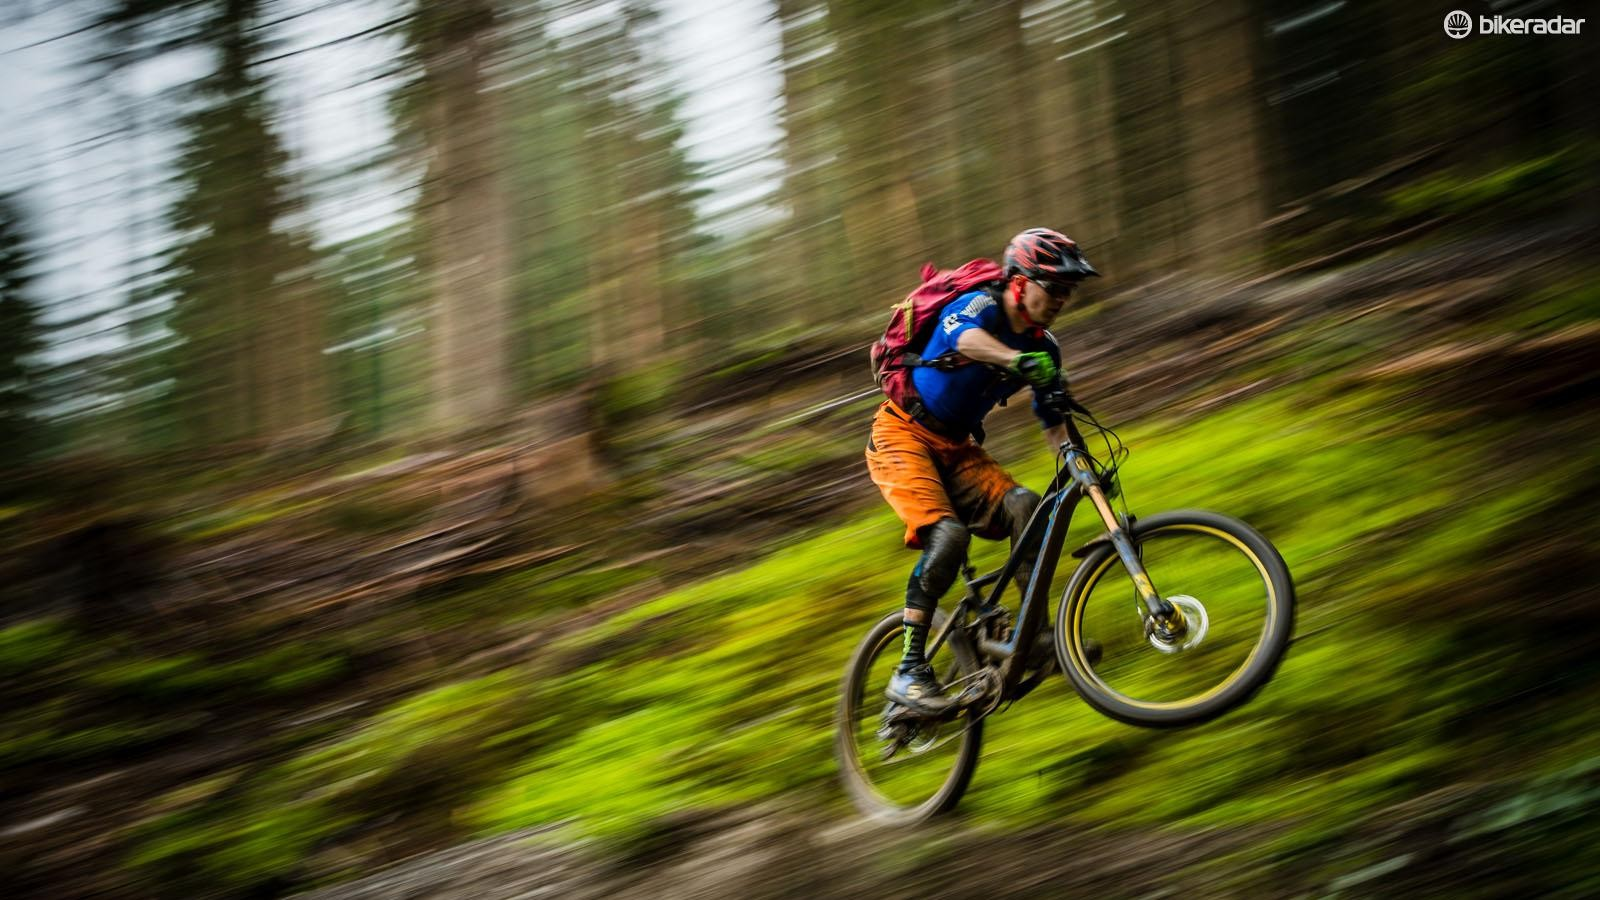 Iniital riding impressions are that the bike is a lightweight, progressively shaped enduro race killer with supportive suspension, especially in the top flight XR spec